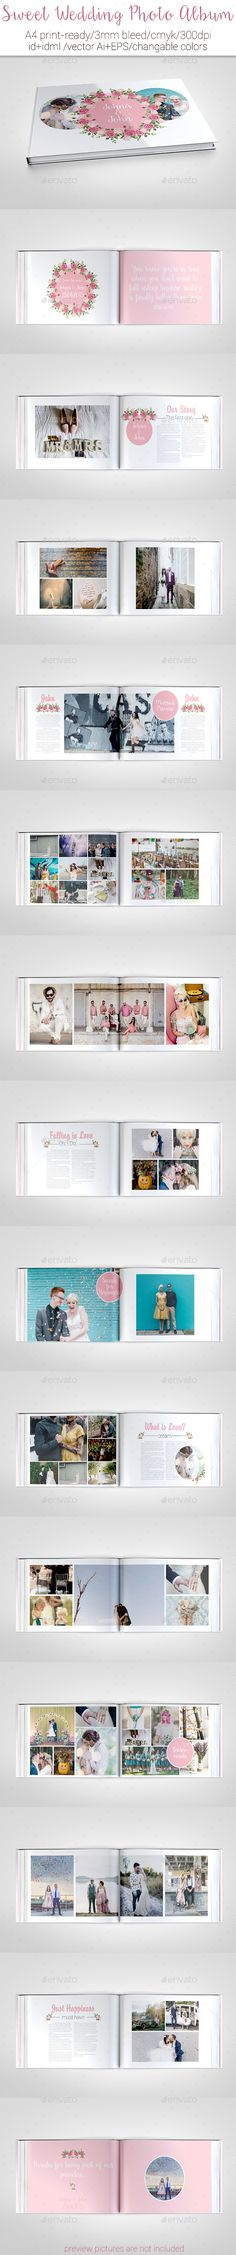 Sweet Wedding Photo Album Template #design #print Download: http://graphicriver.net/item/sweet-wedding-photo-album/11814114?ref=ksioks